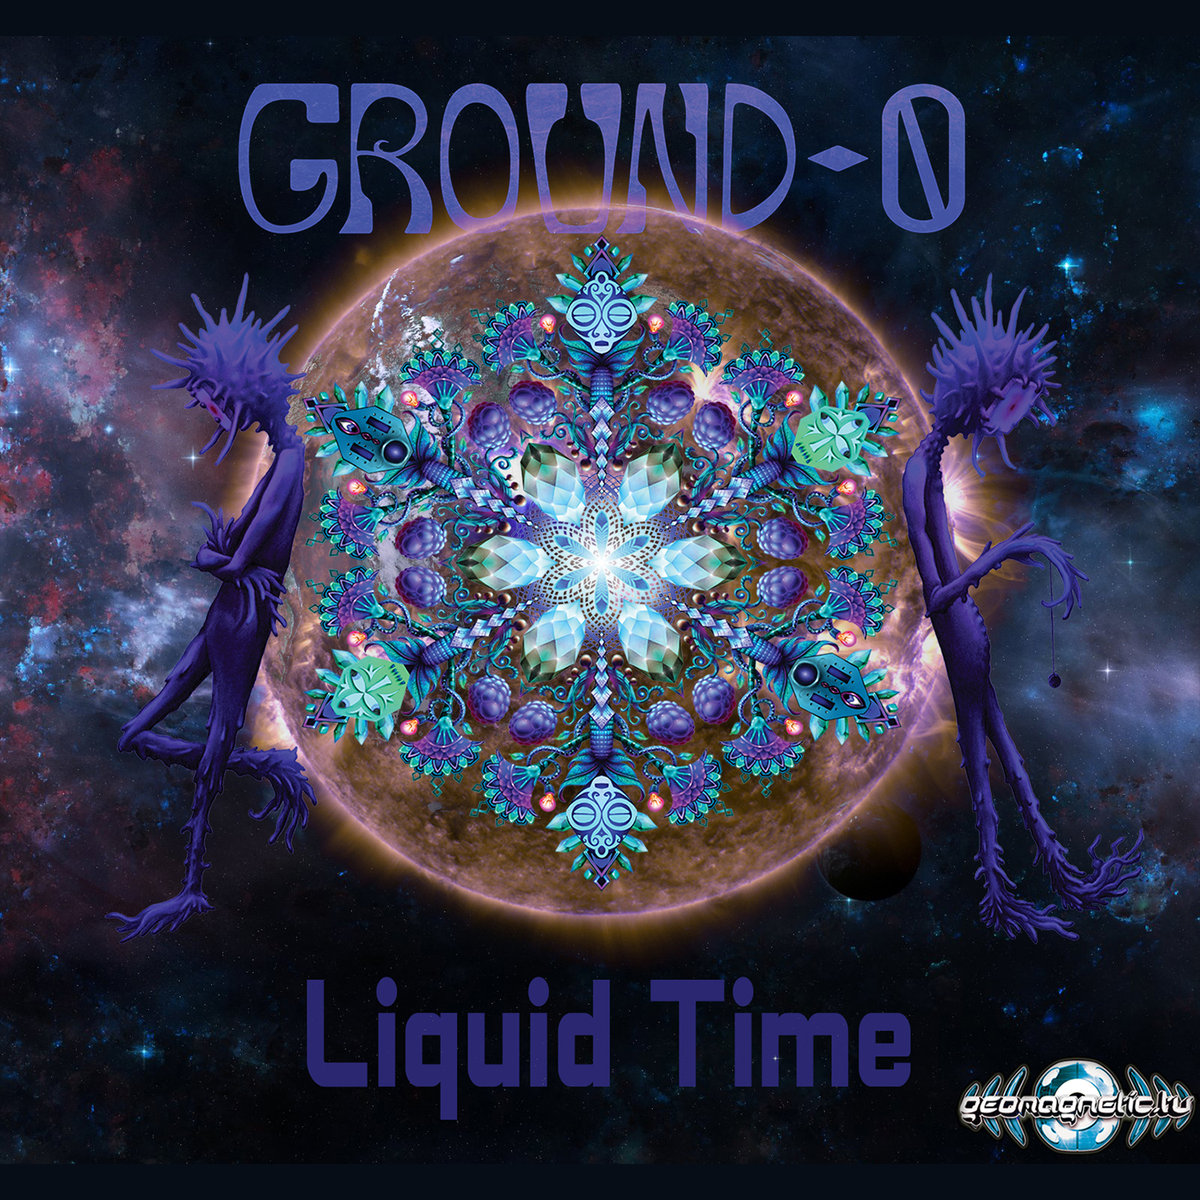 Ground 0 - Liquid Time @ 'Liquid Time' album (electronic, goa)